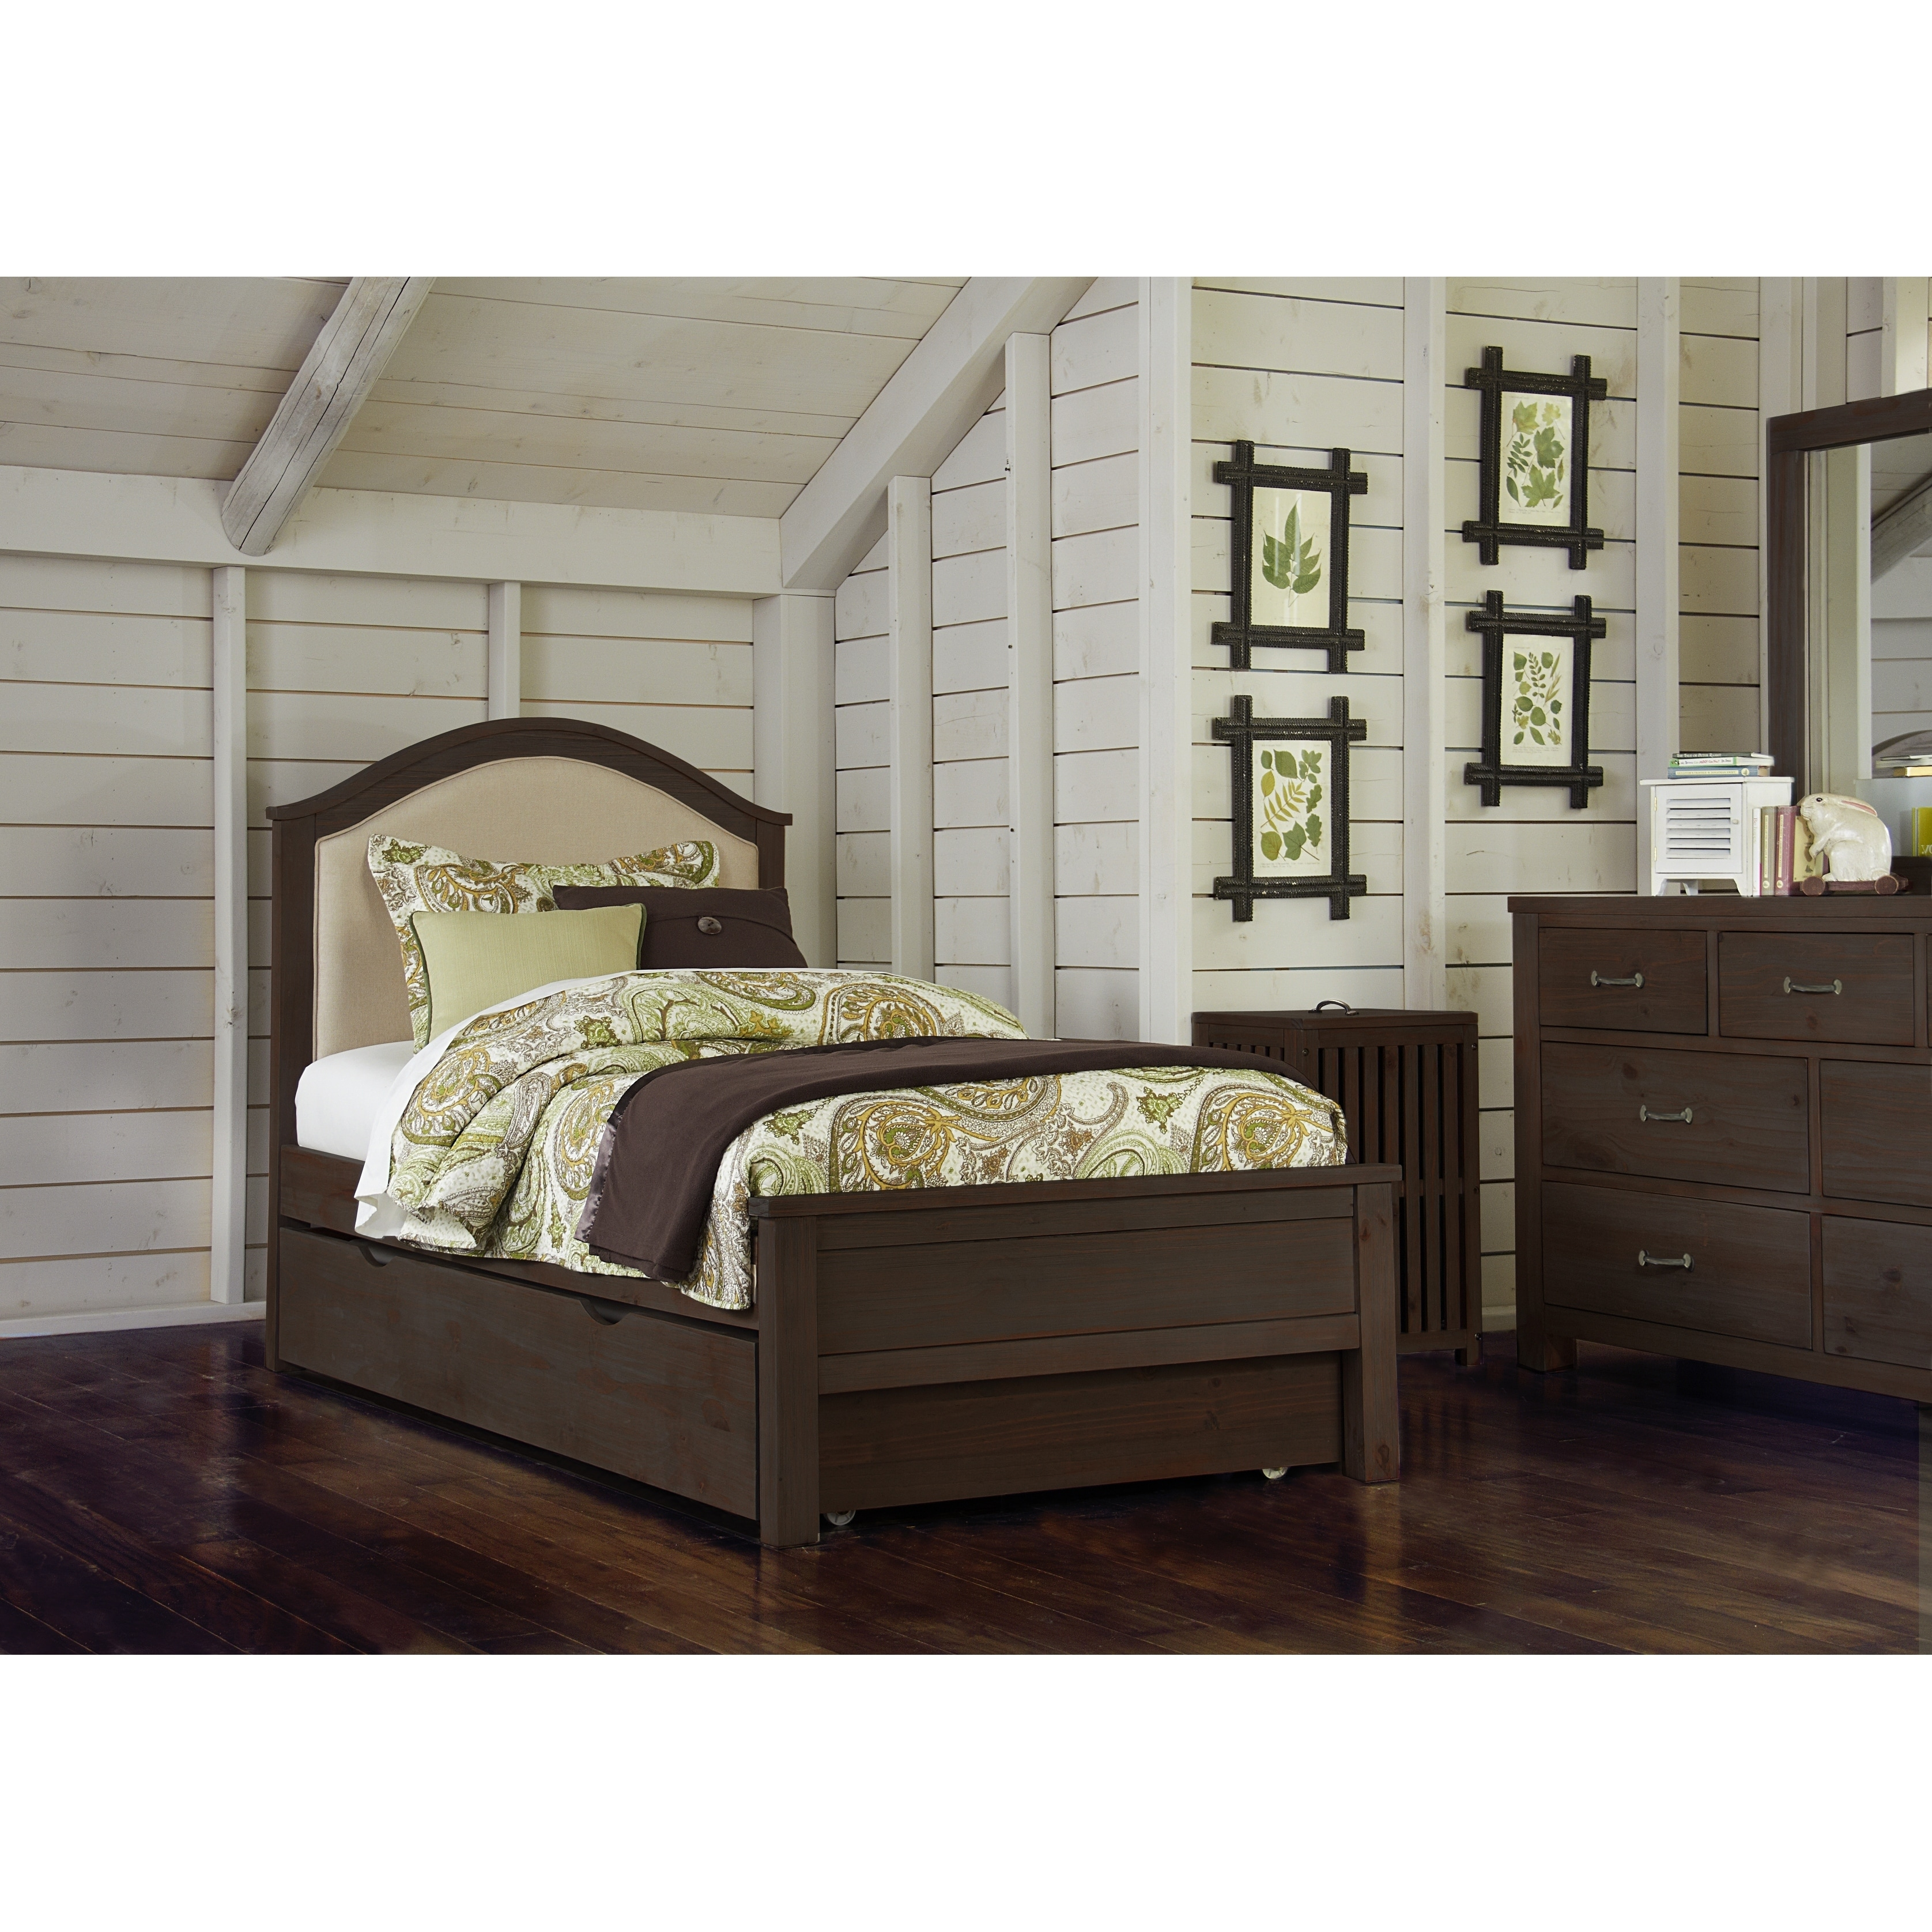 Hillsdale Highlands Twin Bailey Upholstered Bed with Trundle, Espresso